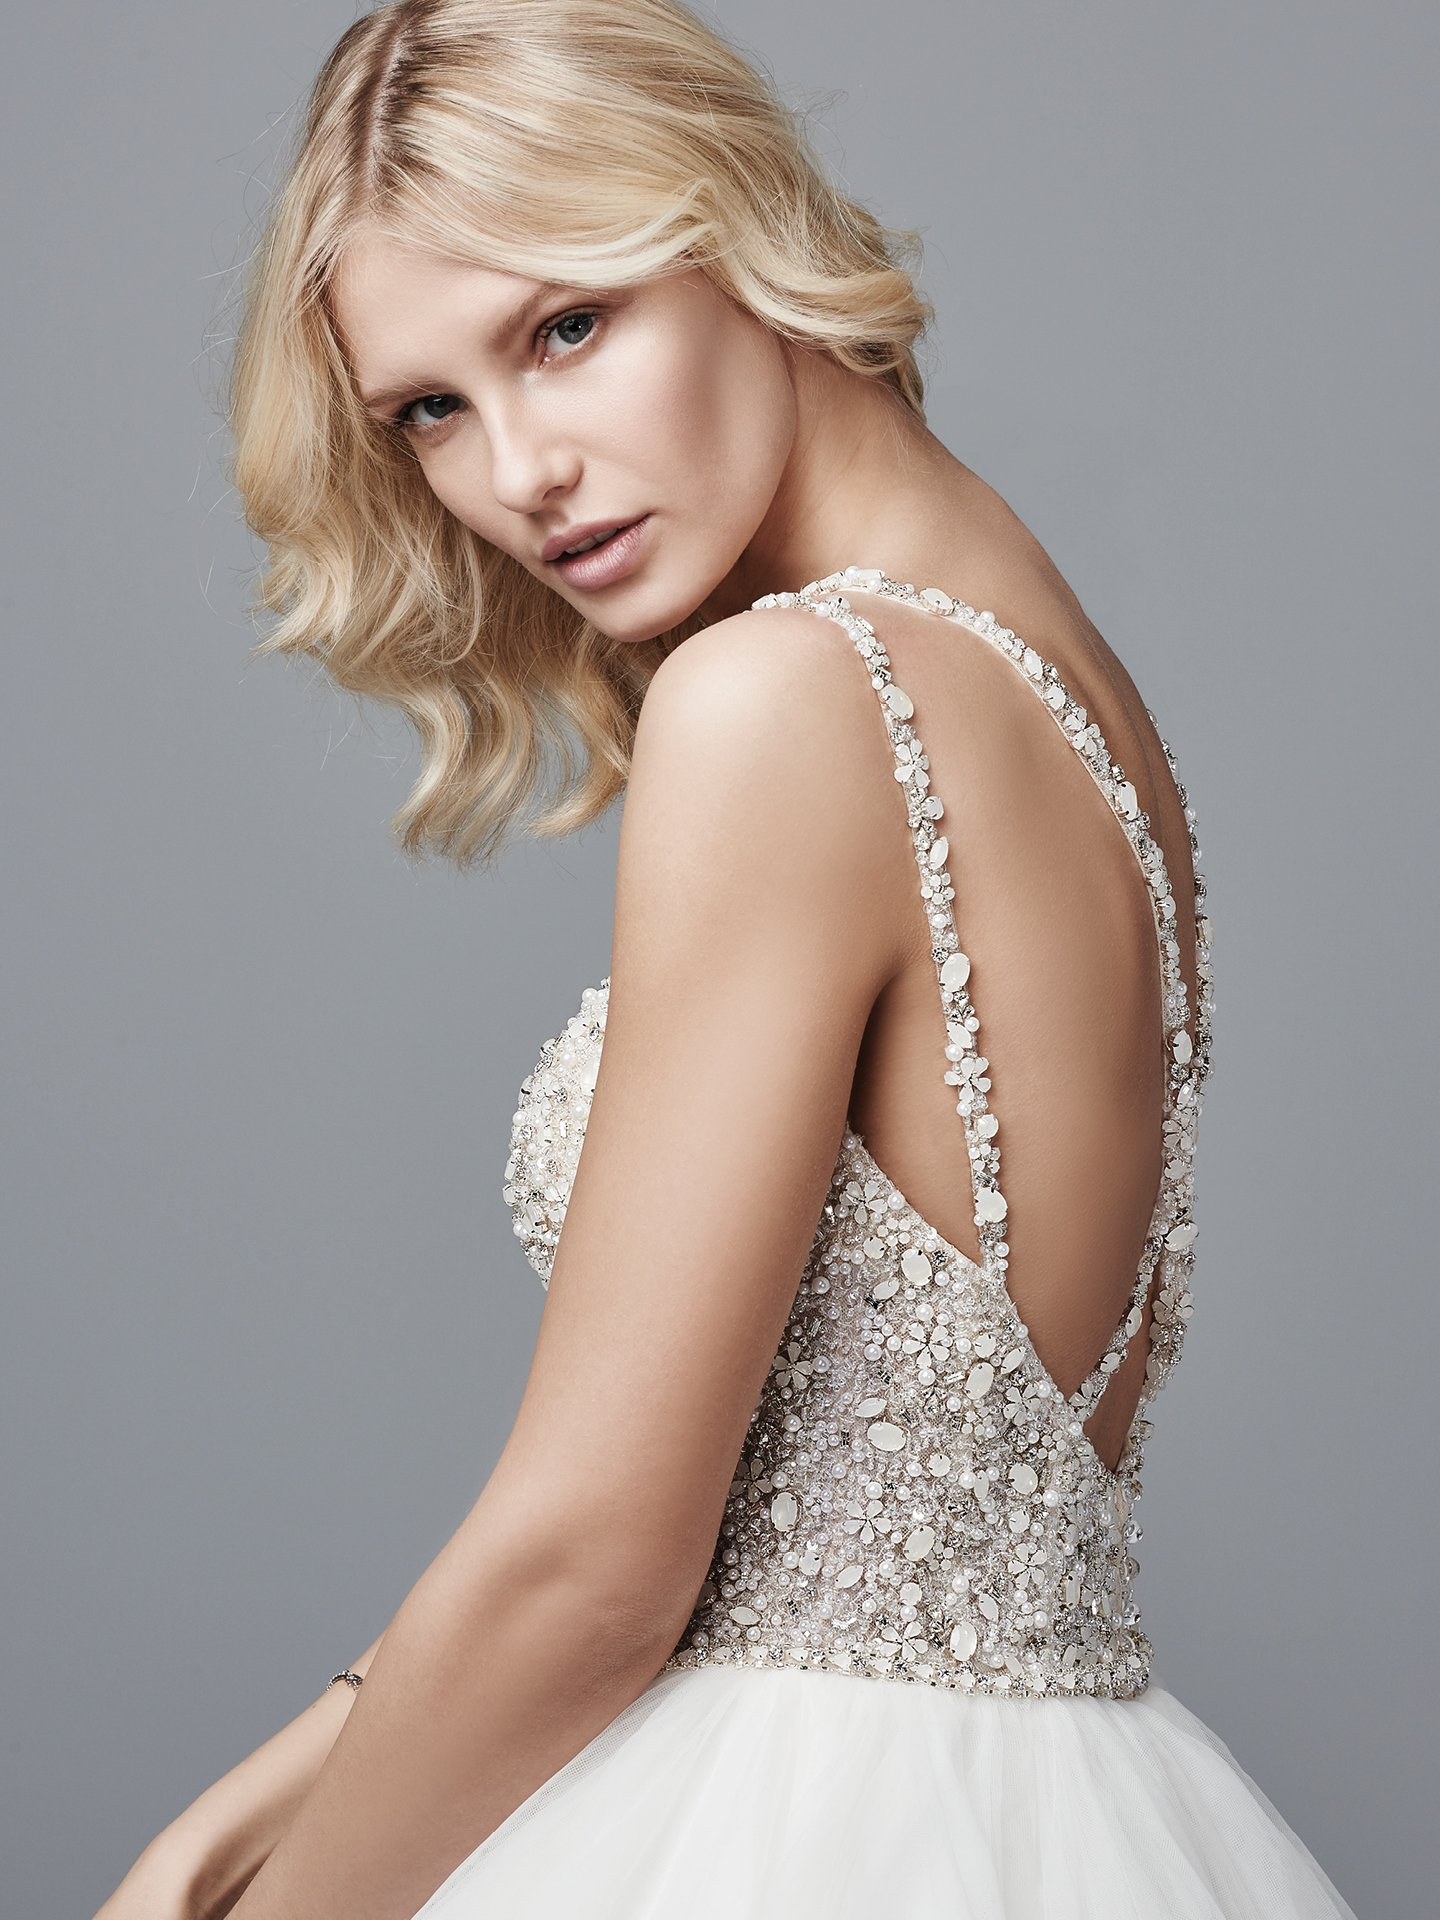 Wedding Gowns that Look Great in Photos - Micah sparkly ball gown wedding dress by Sottero and Midgley